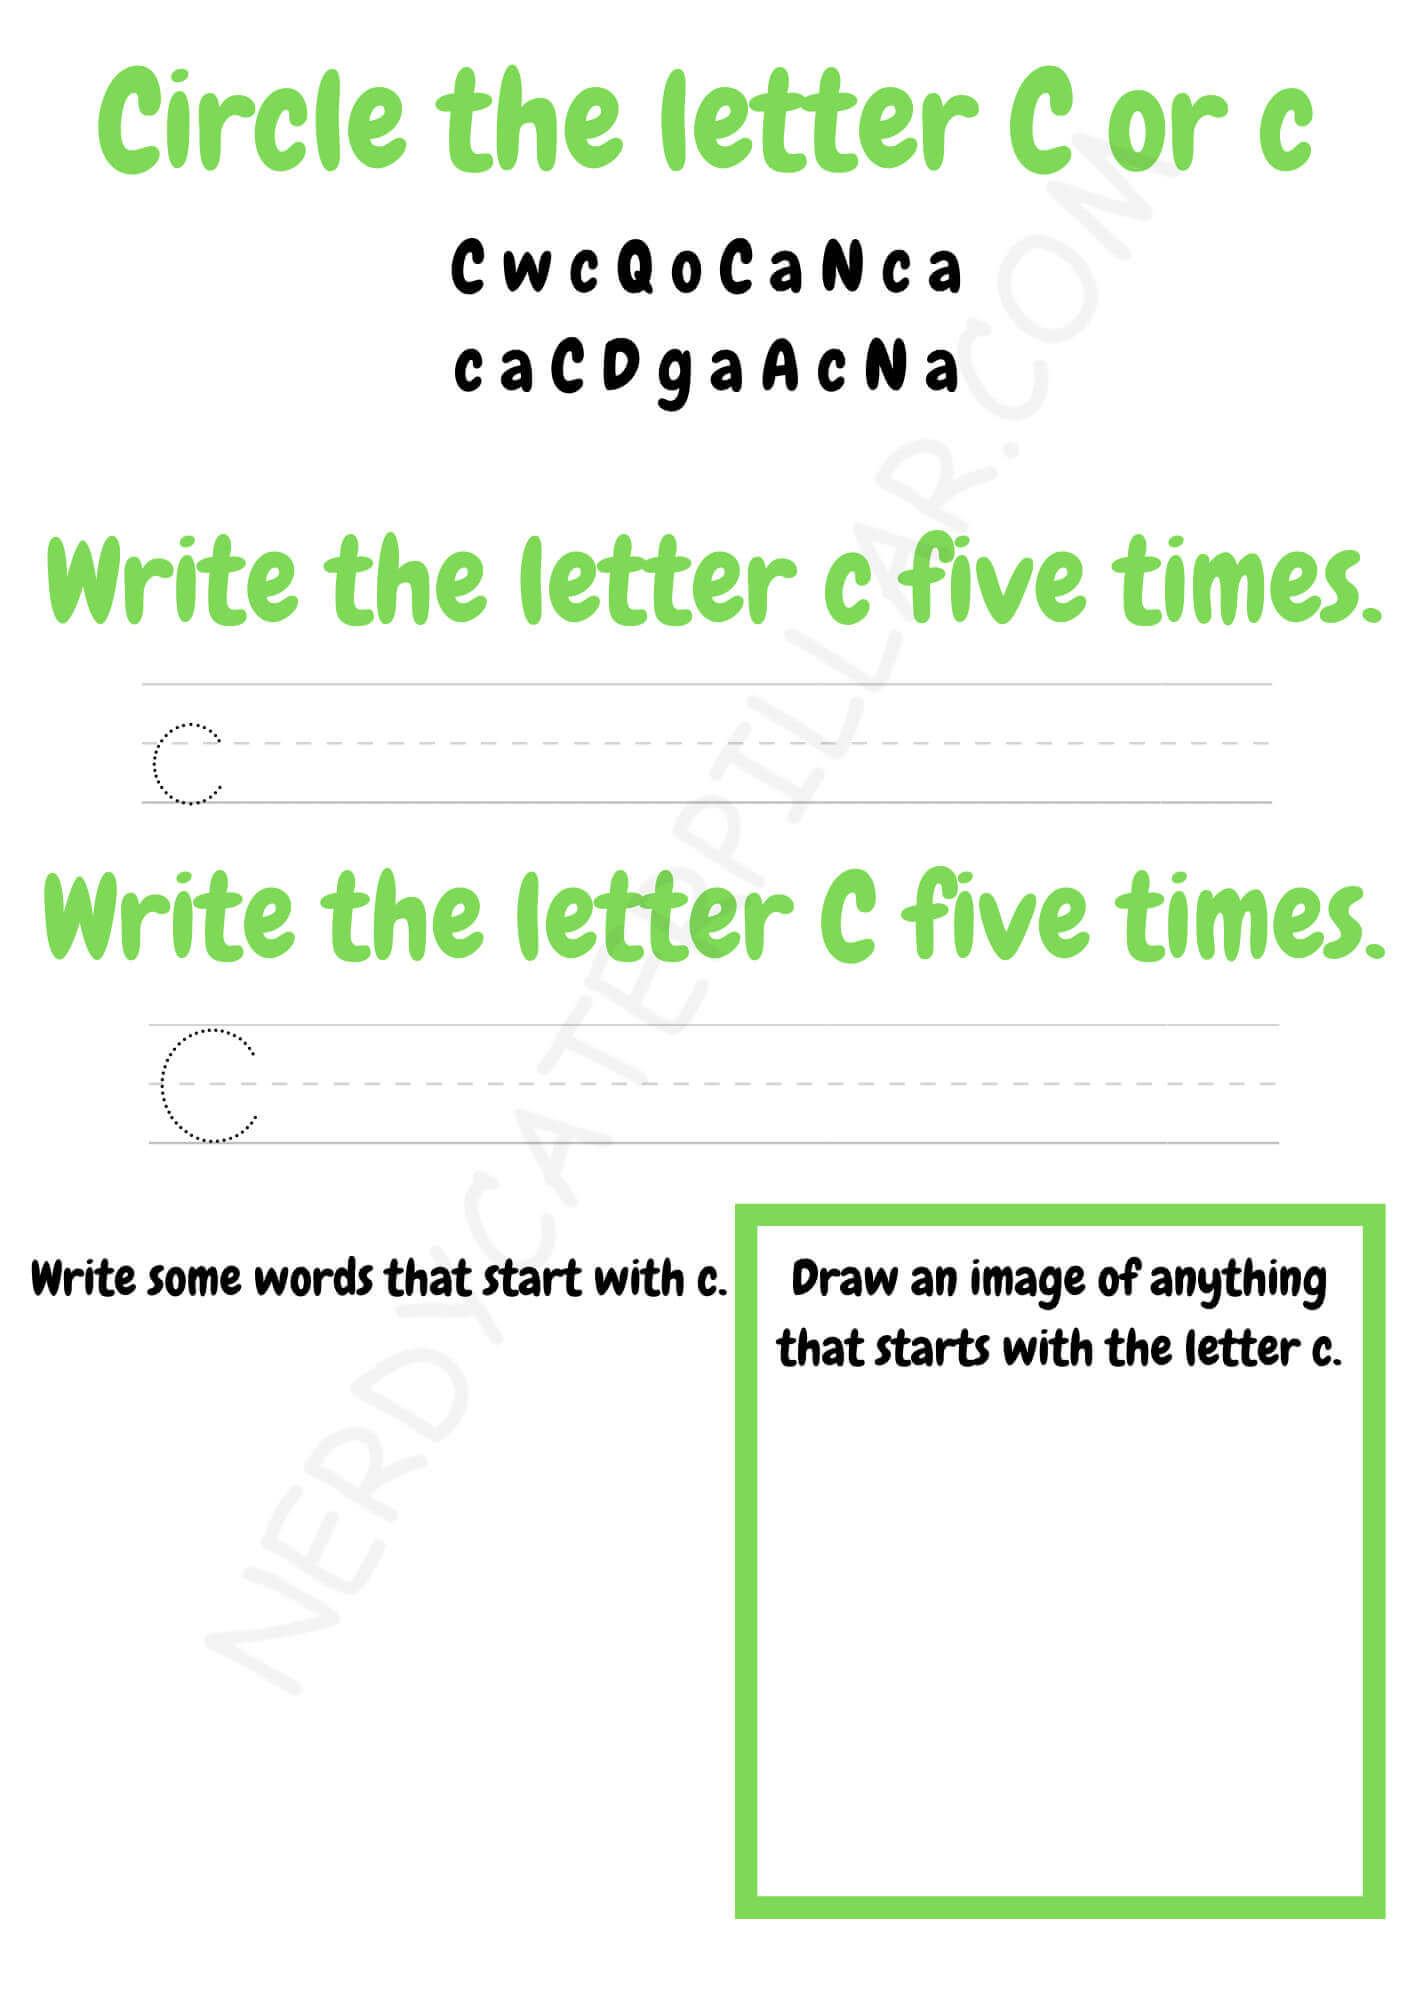 Circle the letter C